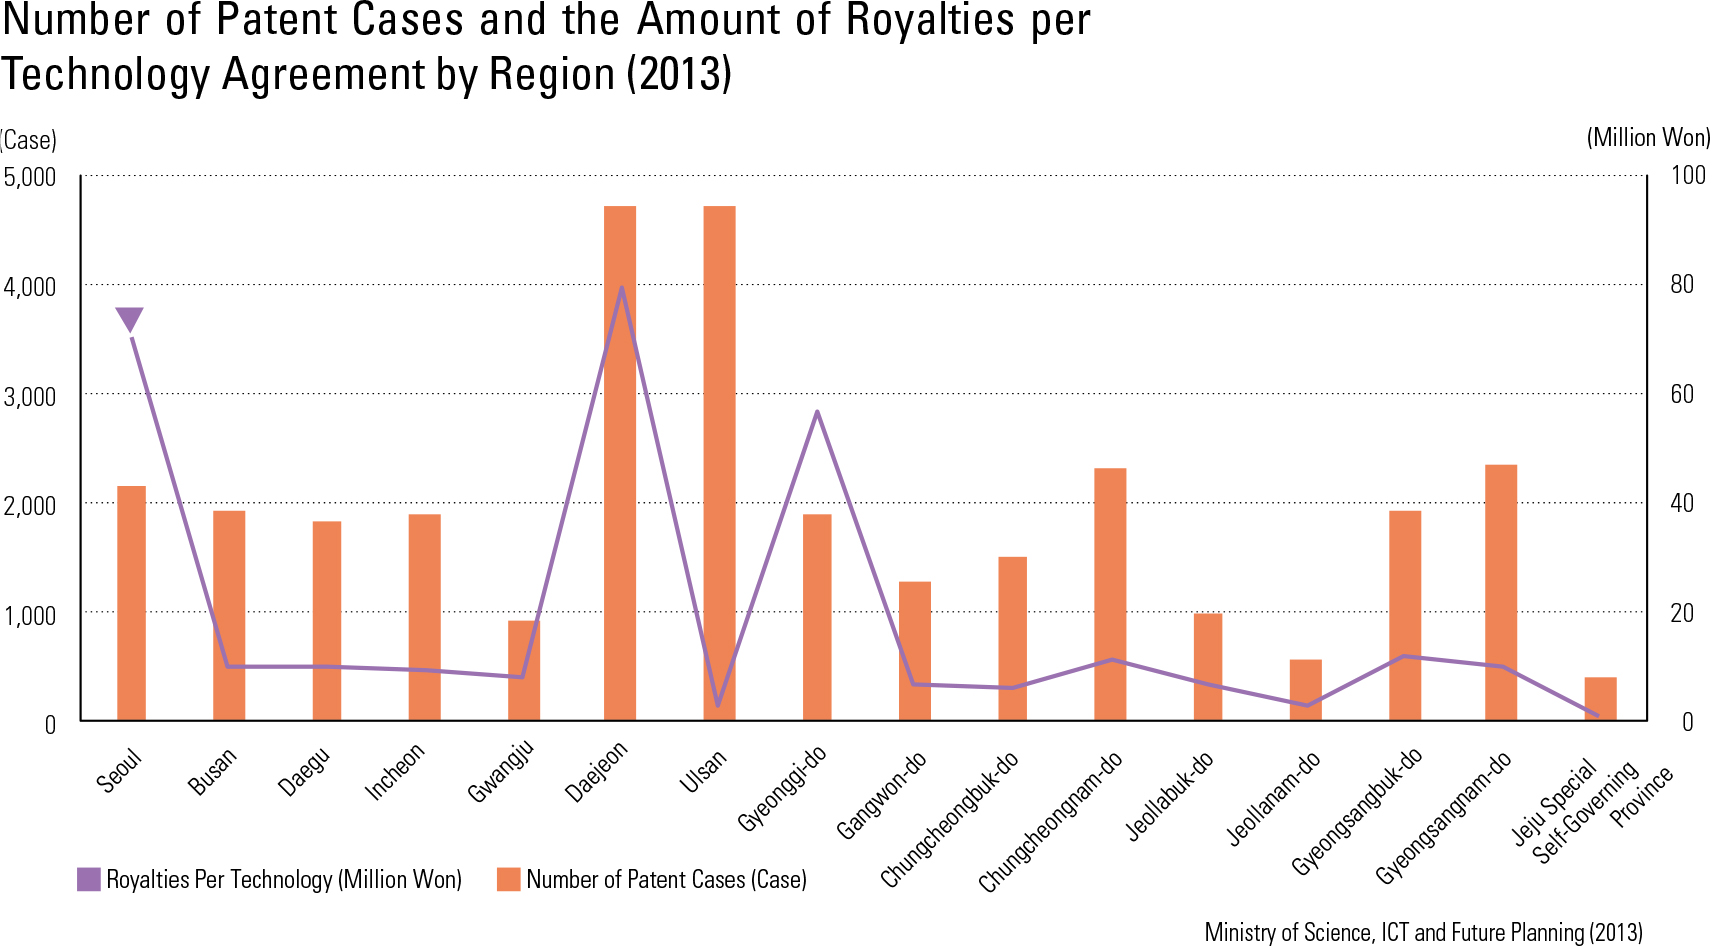 Number of Patent Cases and the Amount of Royalties per Technology Agreement by Region (2013)